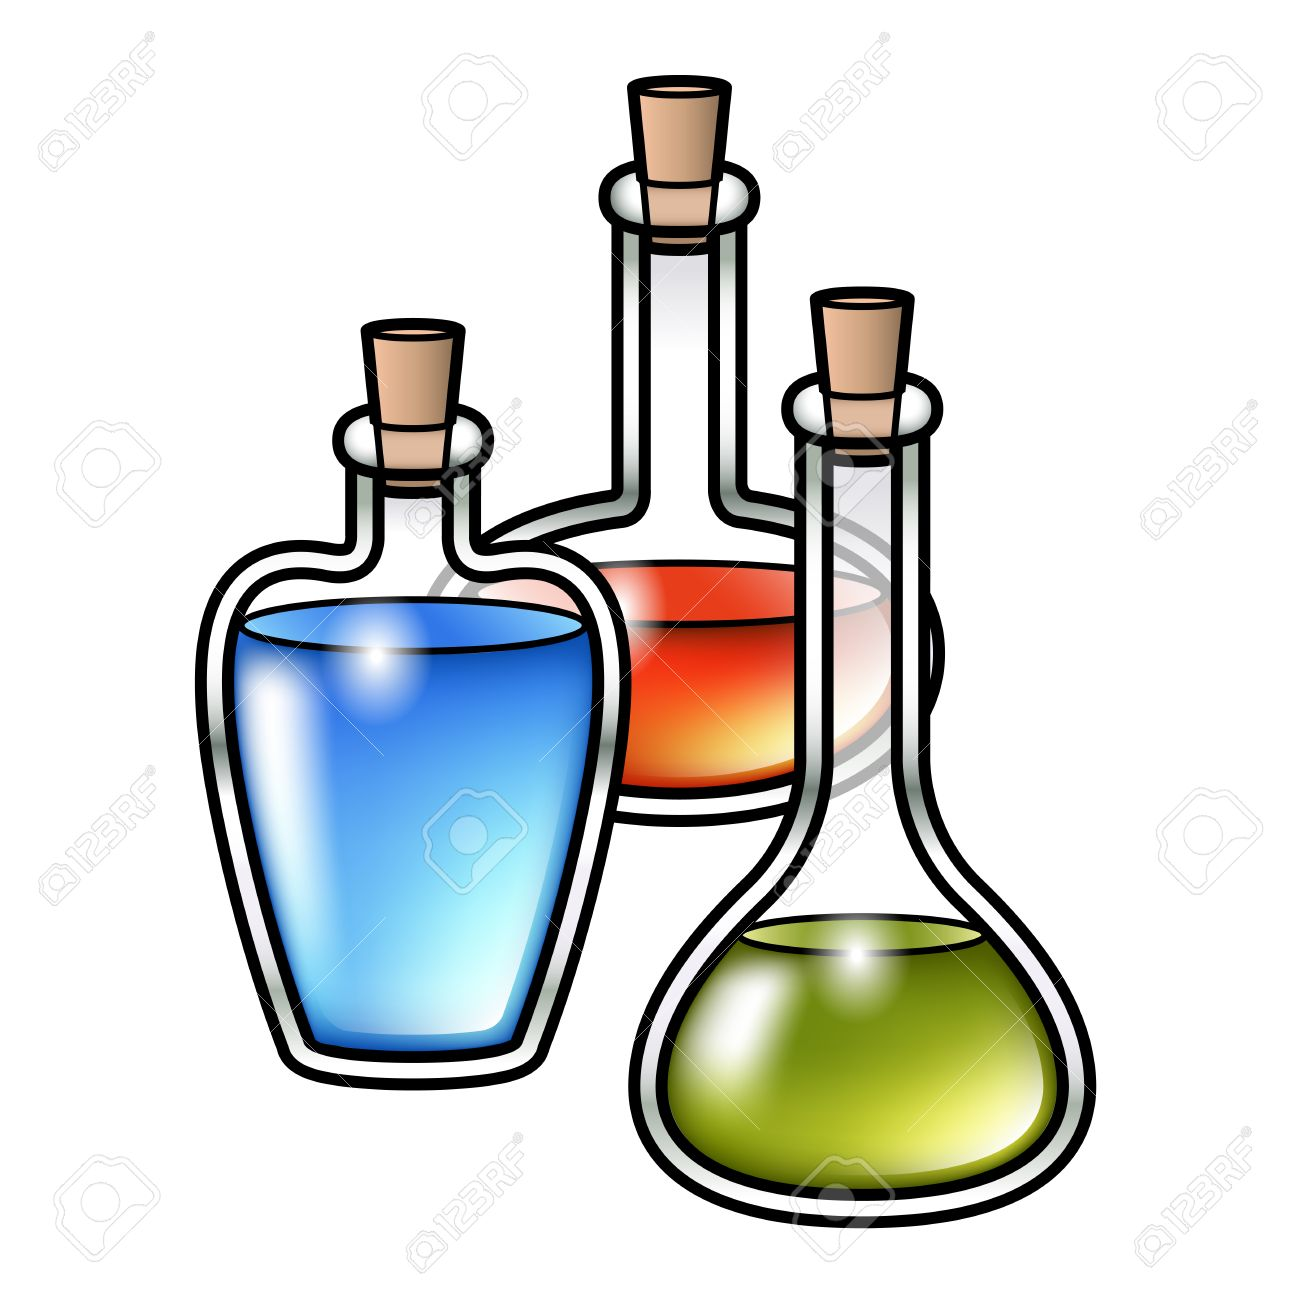 illustration of three cartoon potion bottles with different colored rh 123rf com Potion Vials Love Potion Glass Plastic